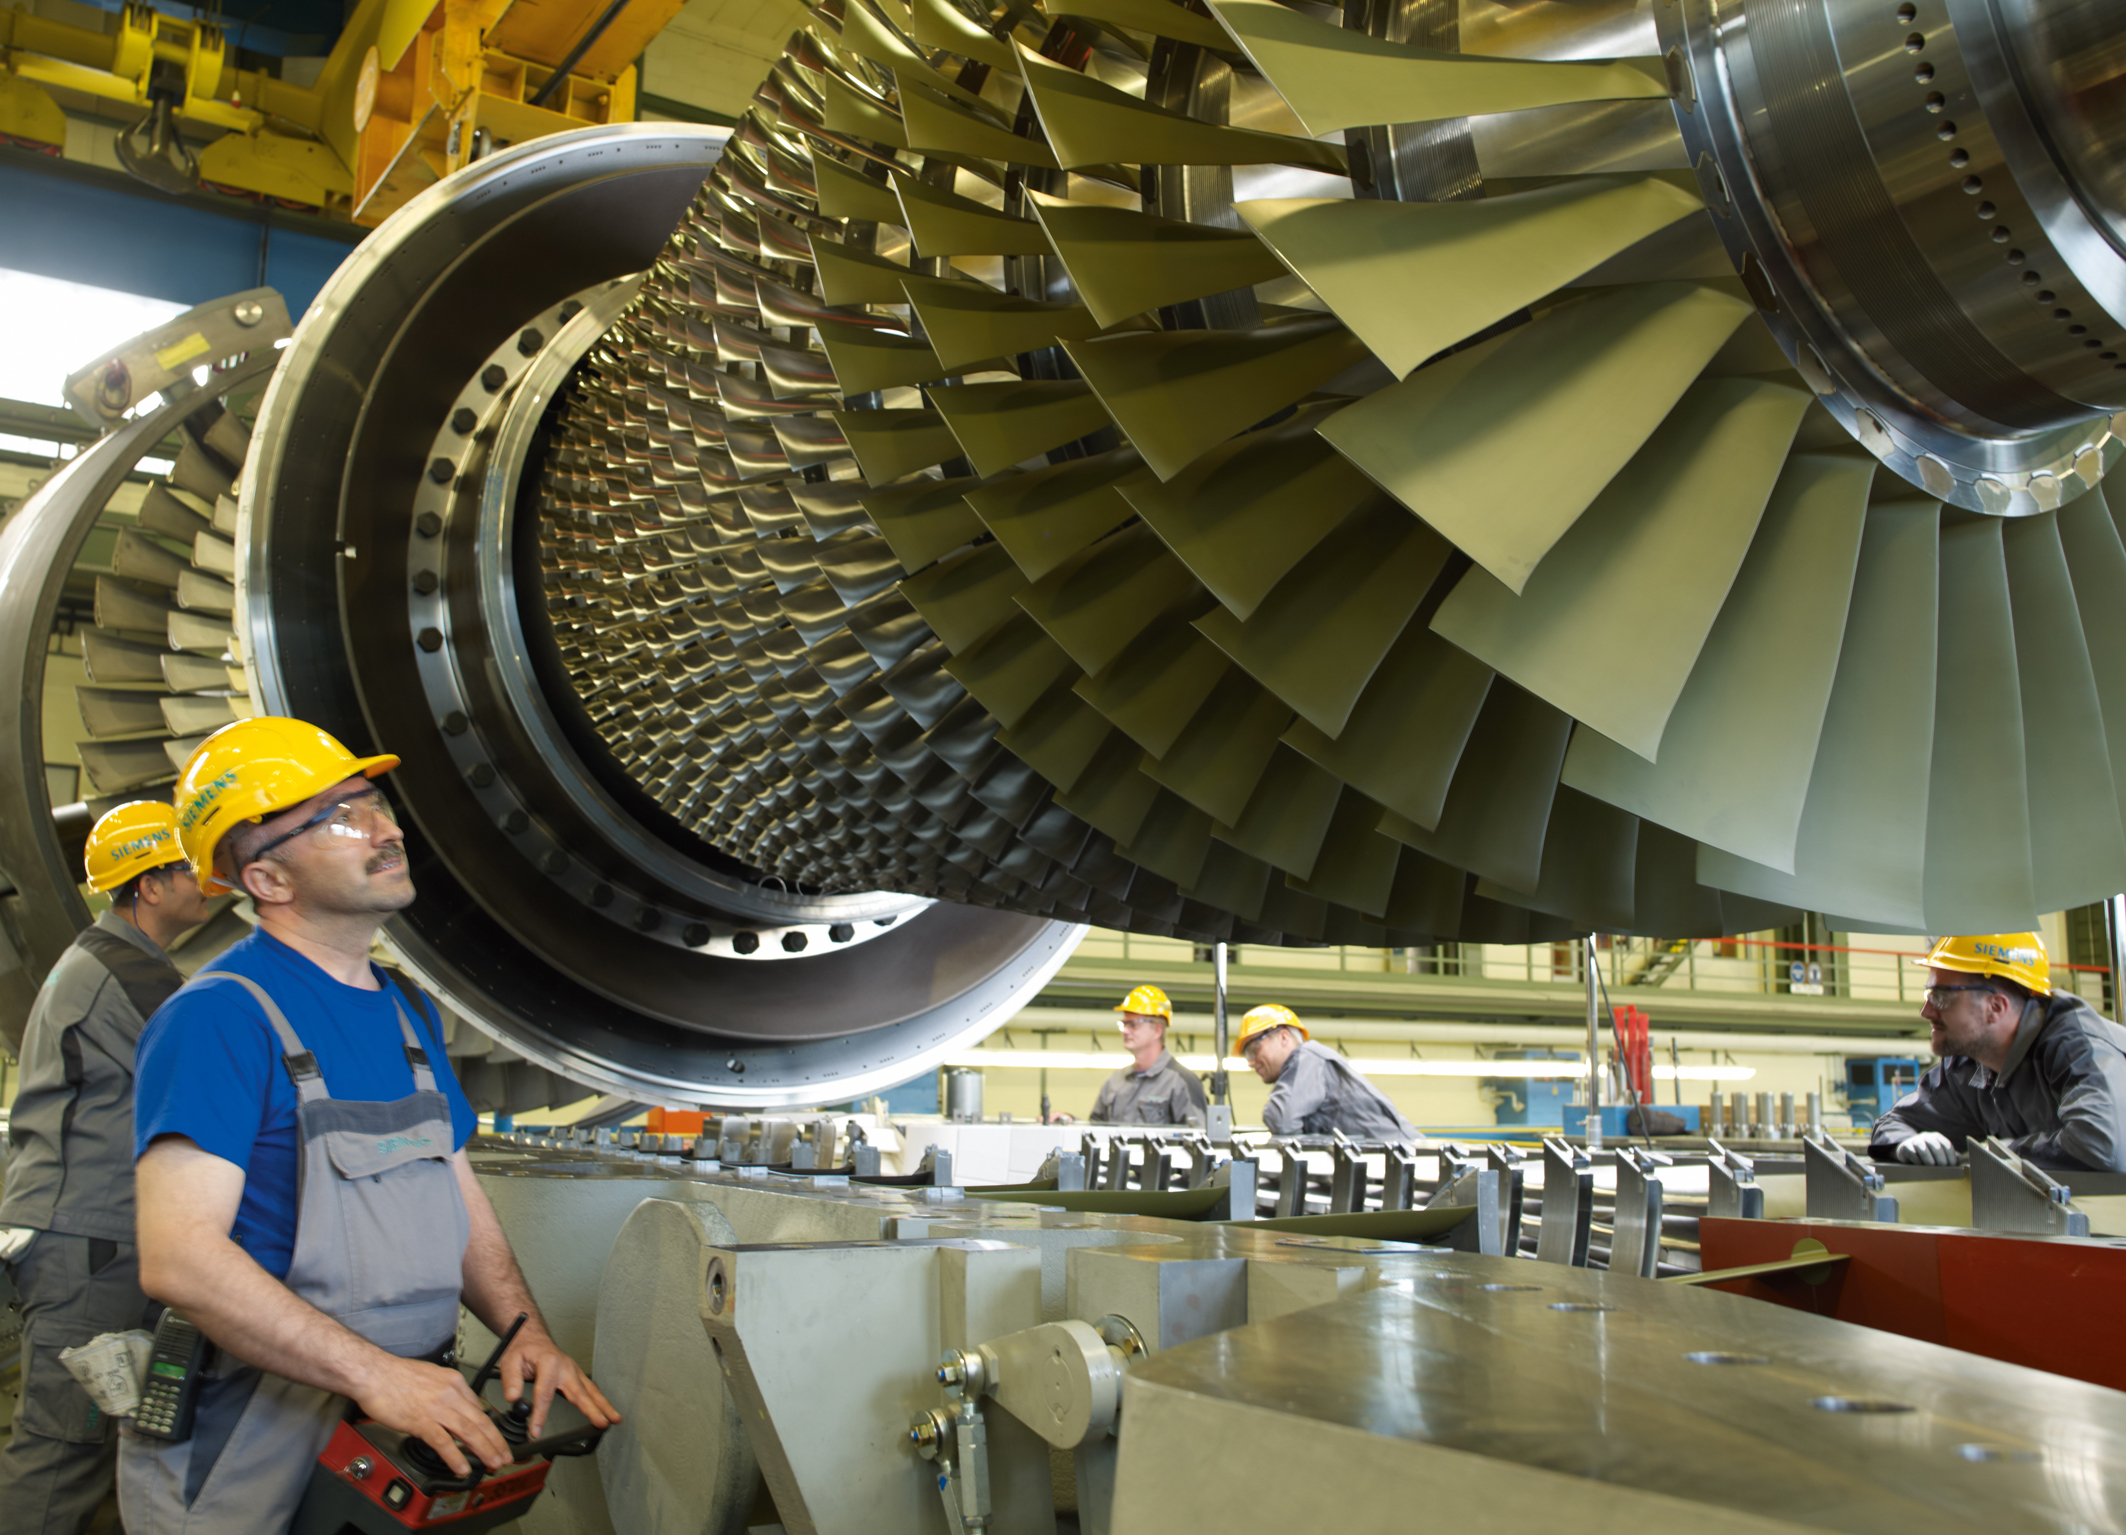 Das Bild zeigt Siemens-Mitarbeiter in der Endmontage beim Einlegen eines Turbinenläufers der Siemens Gasturbine SGT5-4000F. The picture shows Siemens employees in the final assembly hall in the Berlin manufacturing plant while inserting a turbine rotor of the Siemens gas turbine SGT5-4000F.